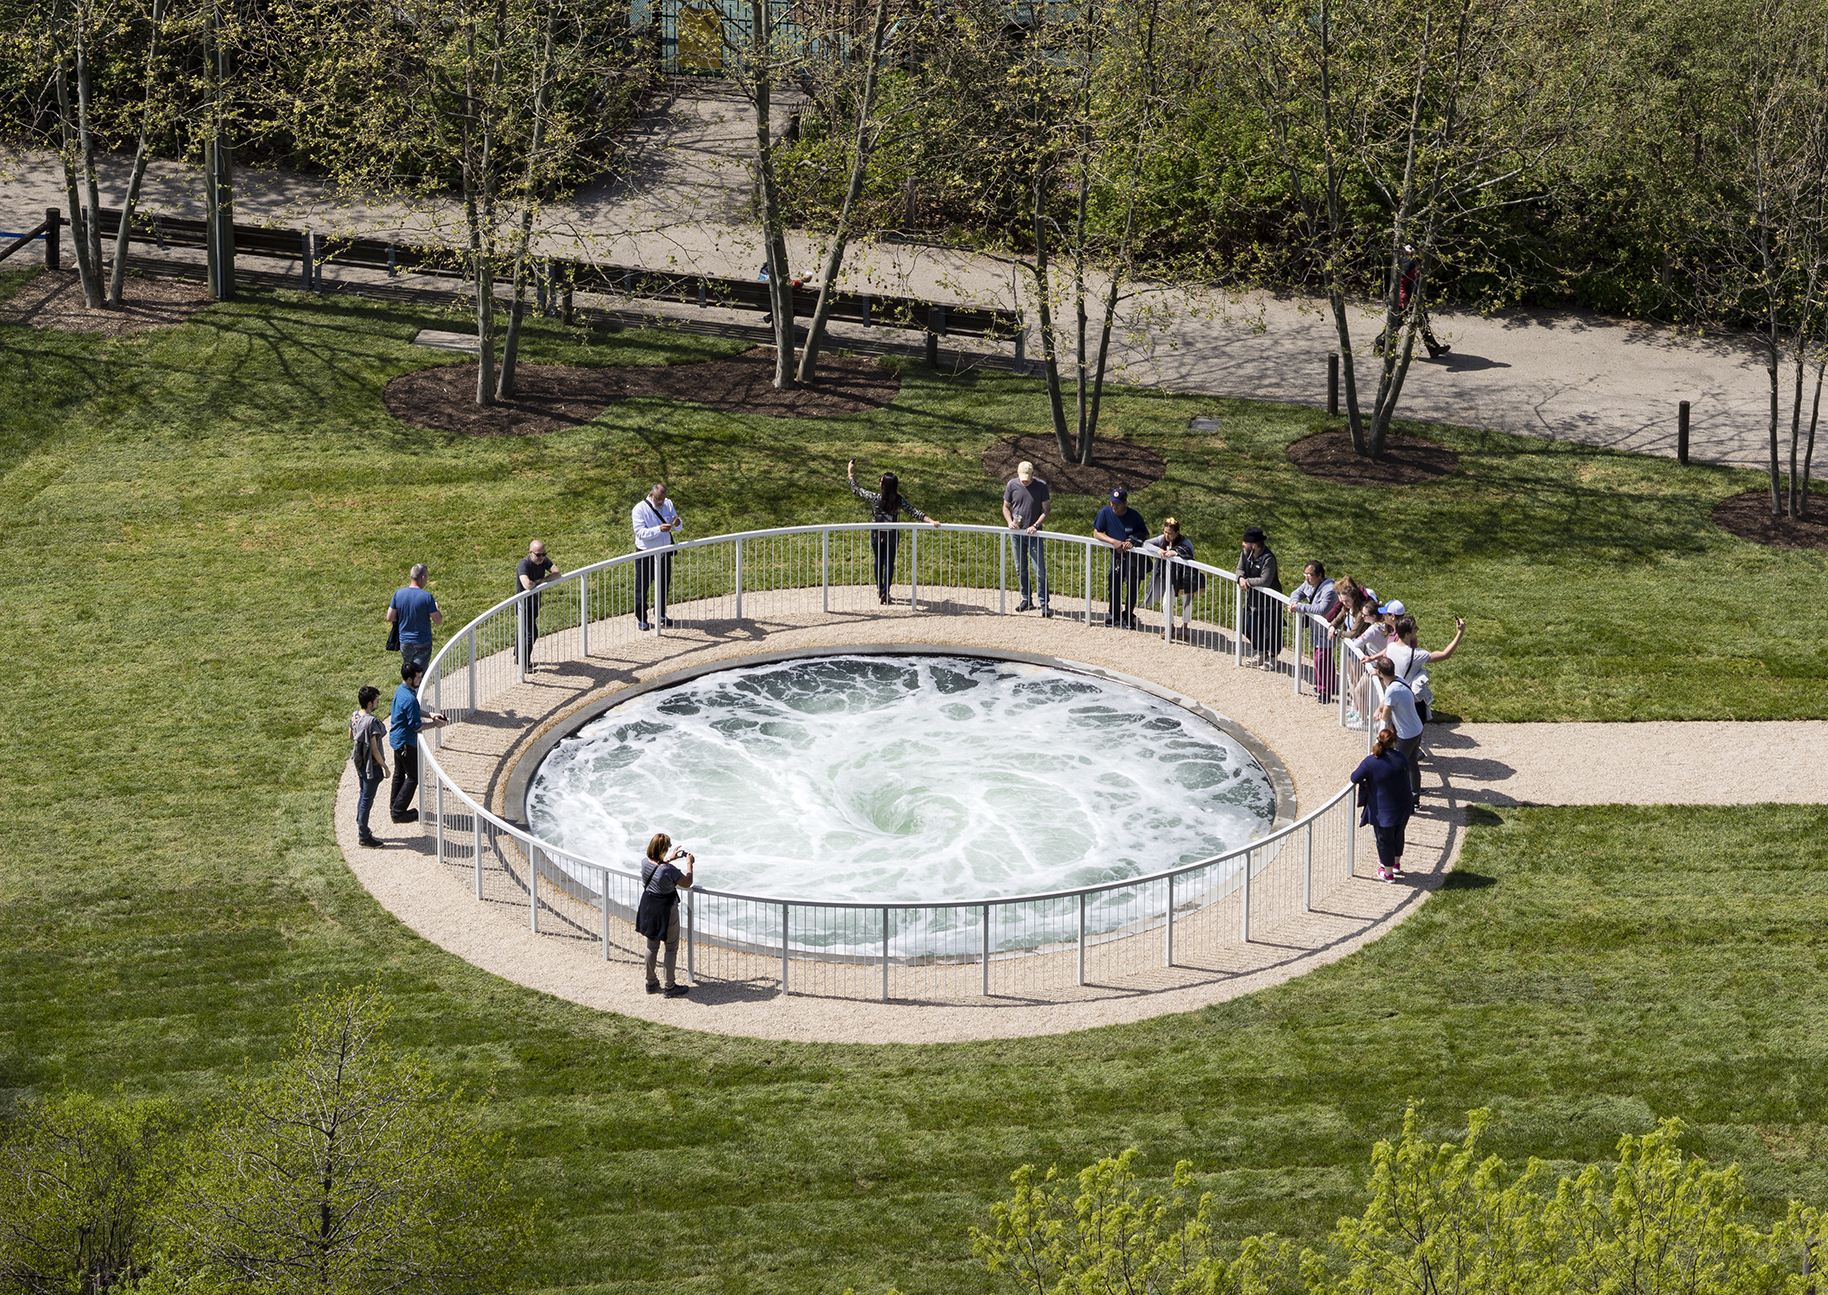 Anish Kapoor wows New Yorkers with his \'Descension\' whirlpool